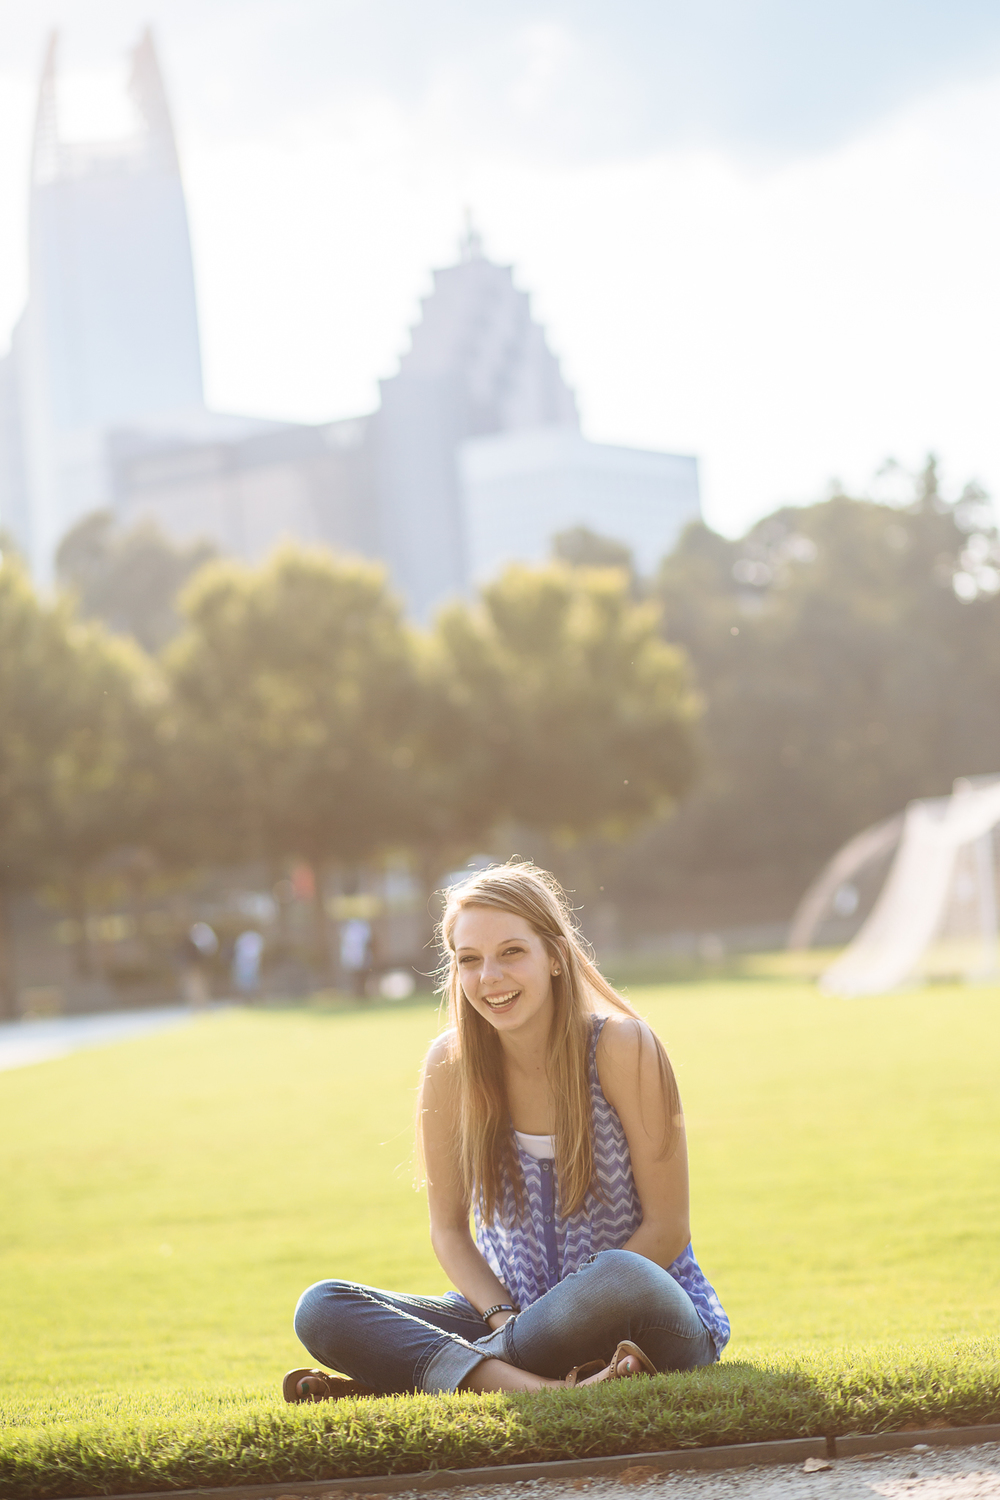 piedmont_park_atlanta_atl_photo_senior_portaits_erin_spruell_photography_17